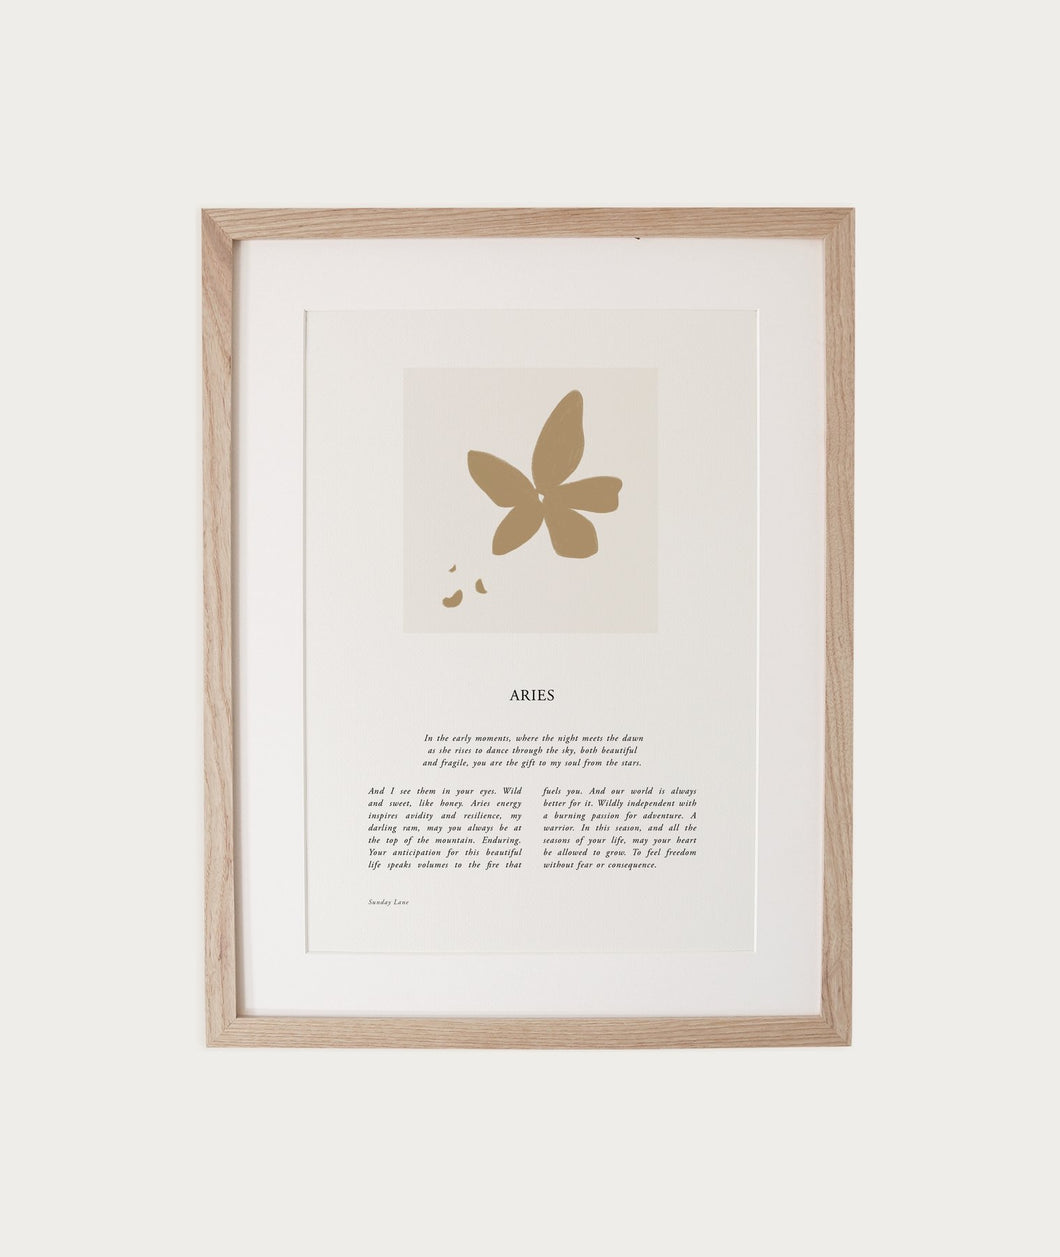 Sunday Lane Zodiac A4 Print - Aries 04